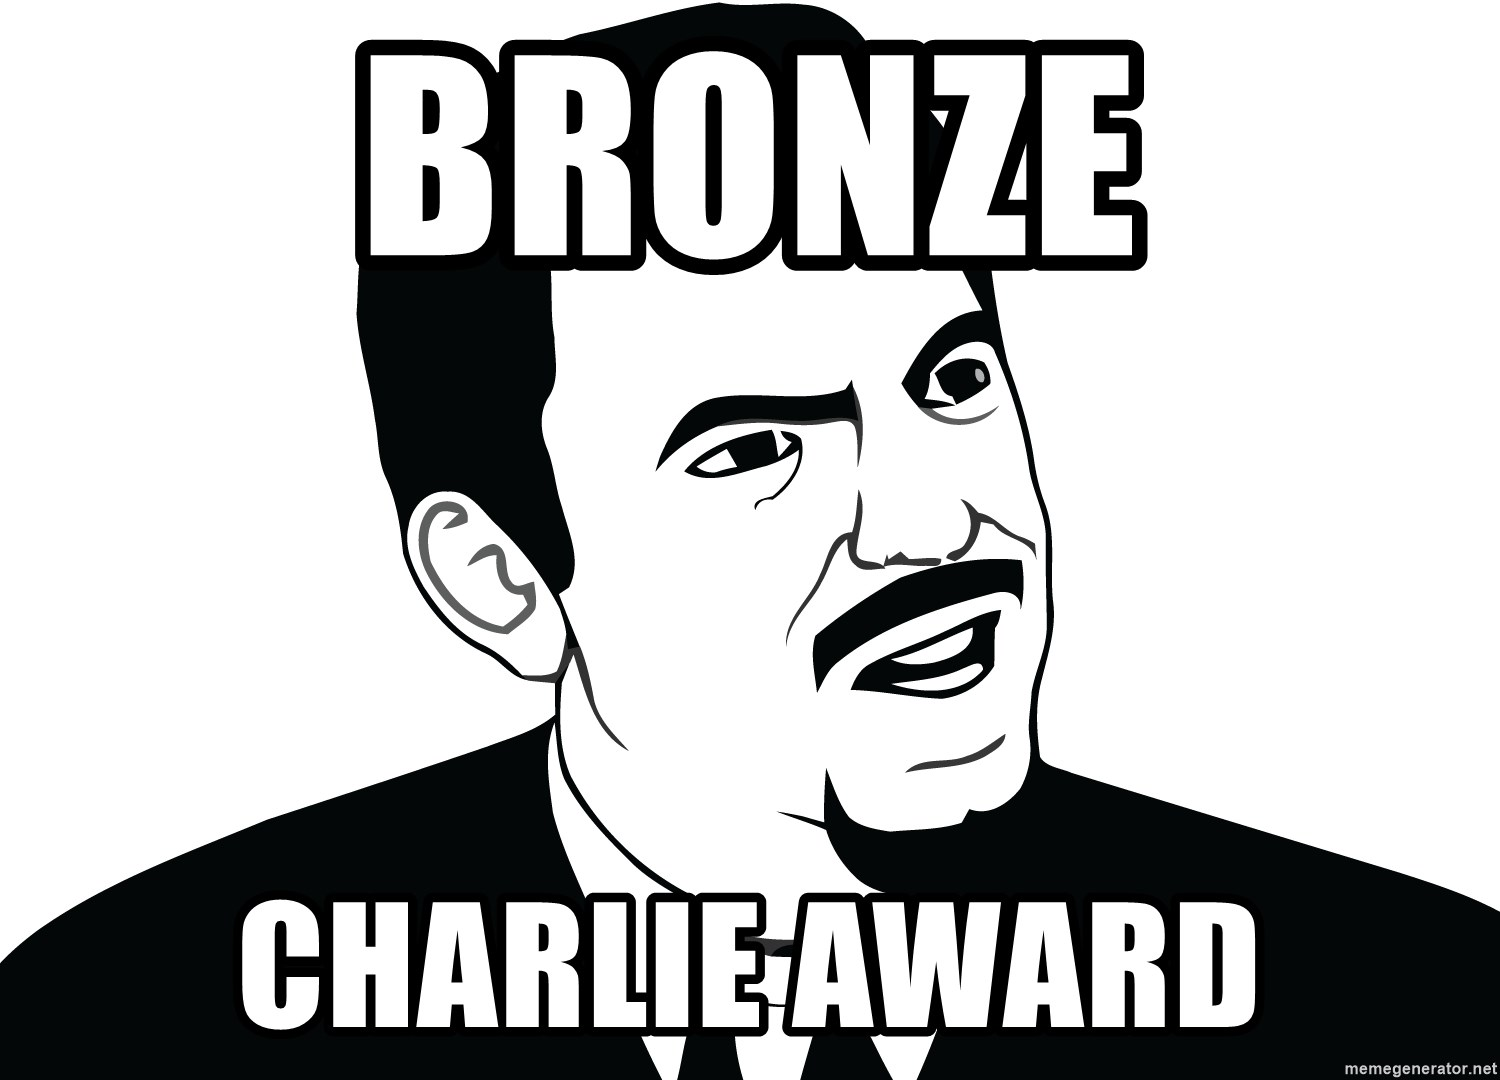 Are you serious face  - Bronze Charlie award